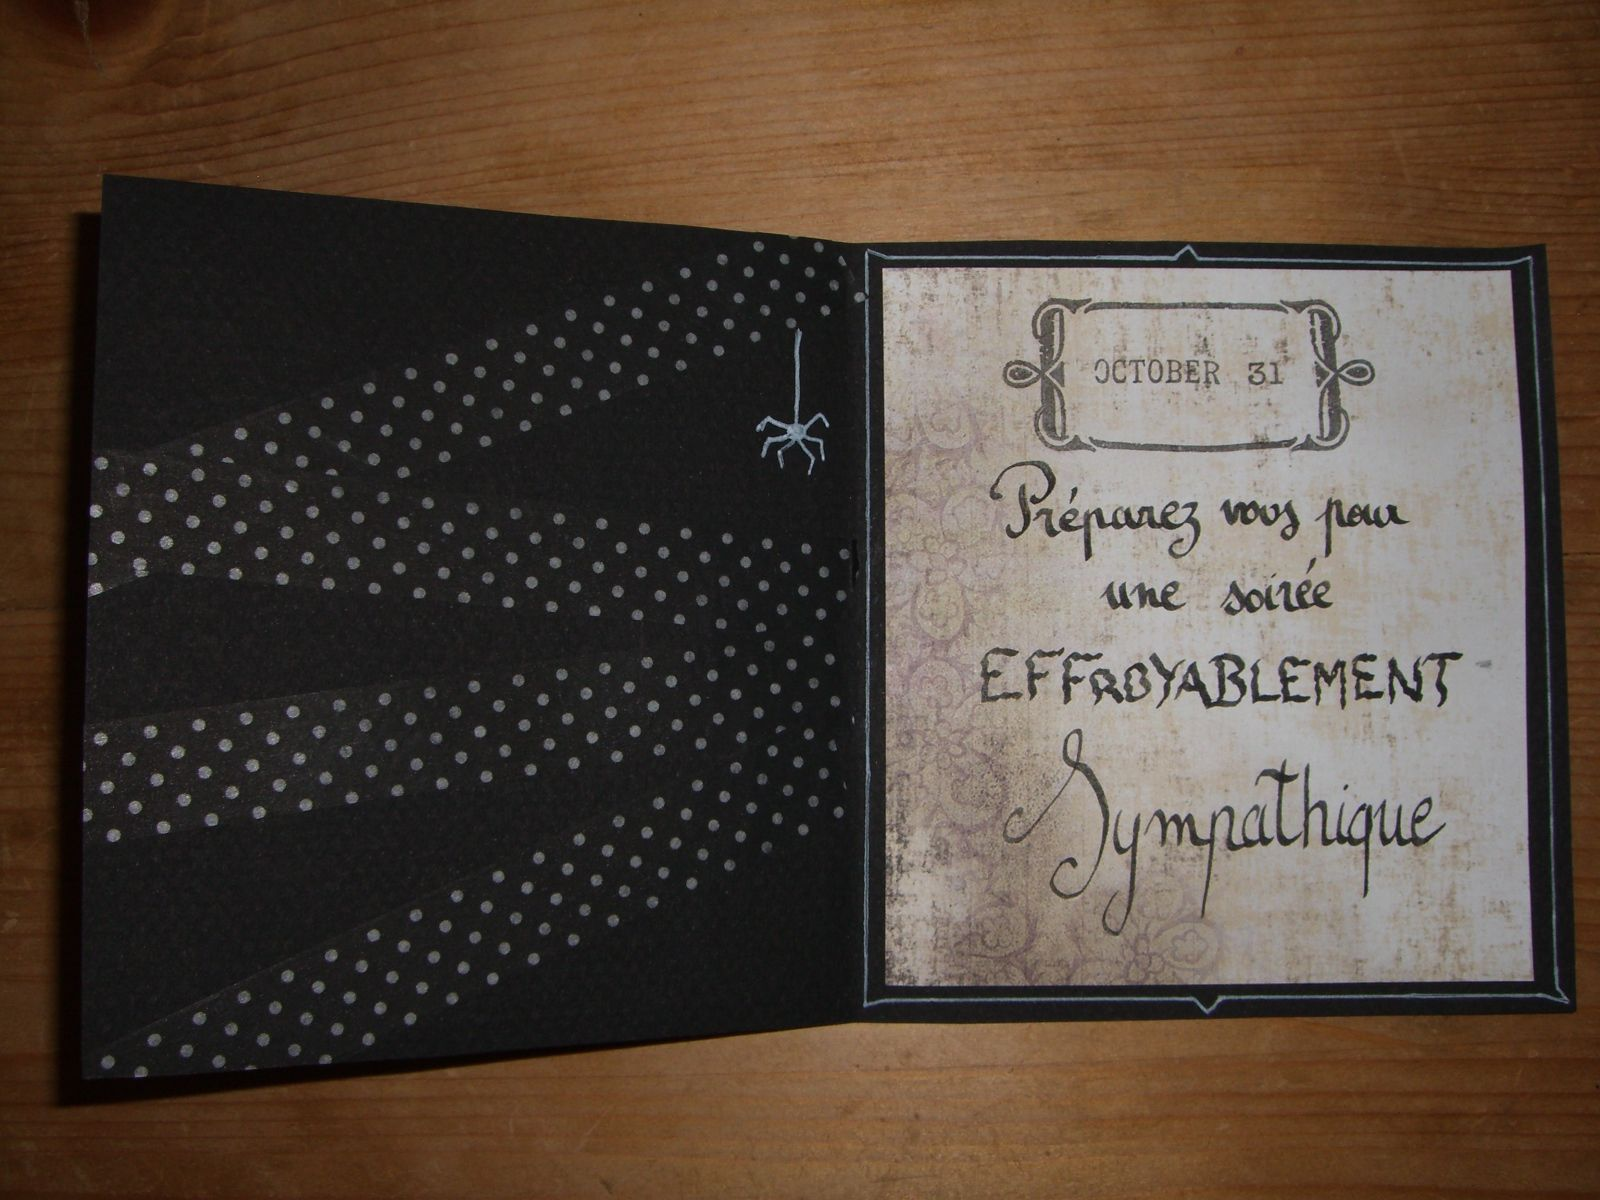 Halloween invitation made of black carton paper+masking tape+scrapbooking paper+stamp for date and frame